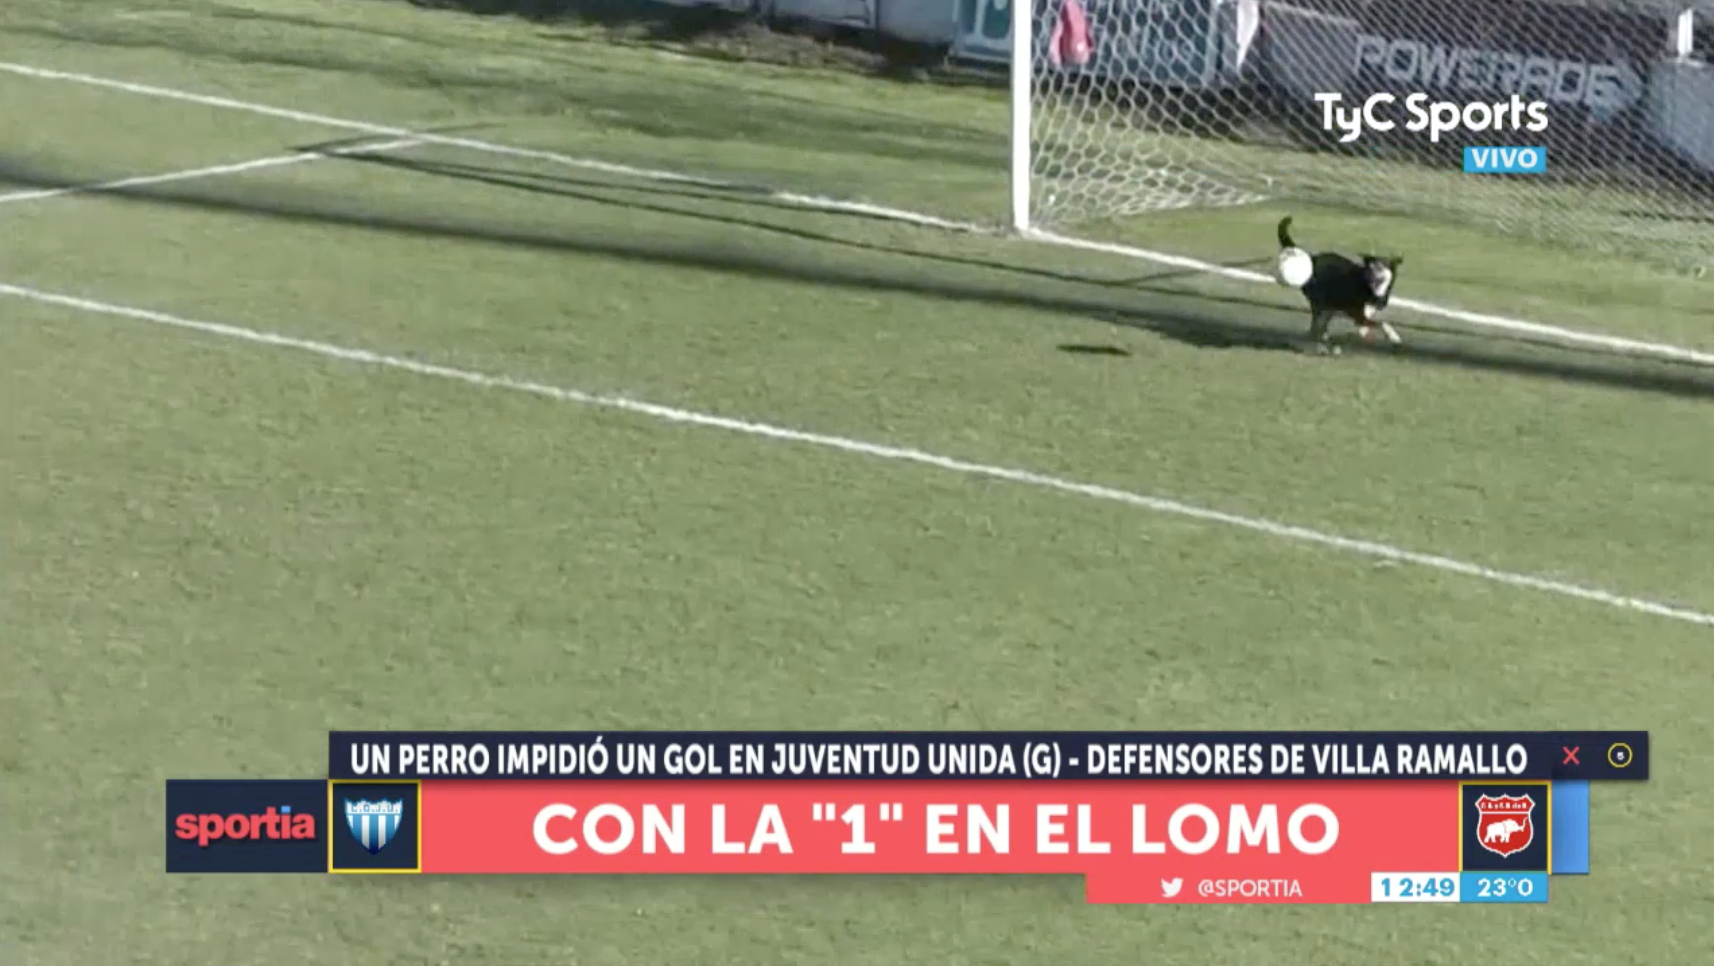 Dog makes save in soccer game in Argentina (video)